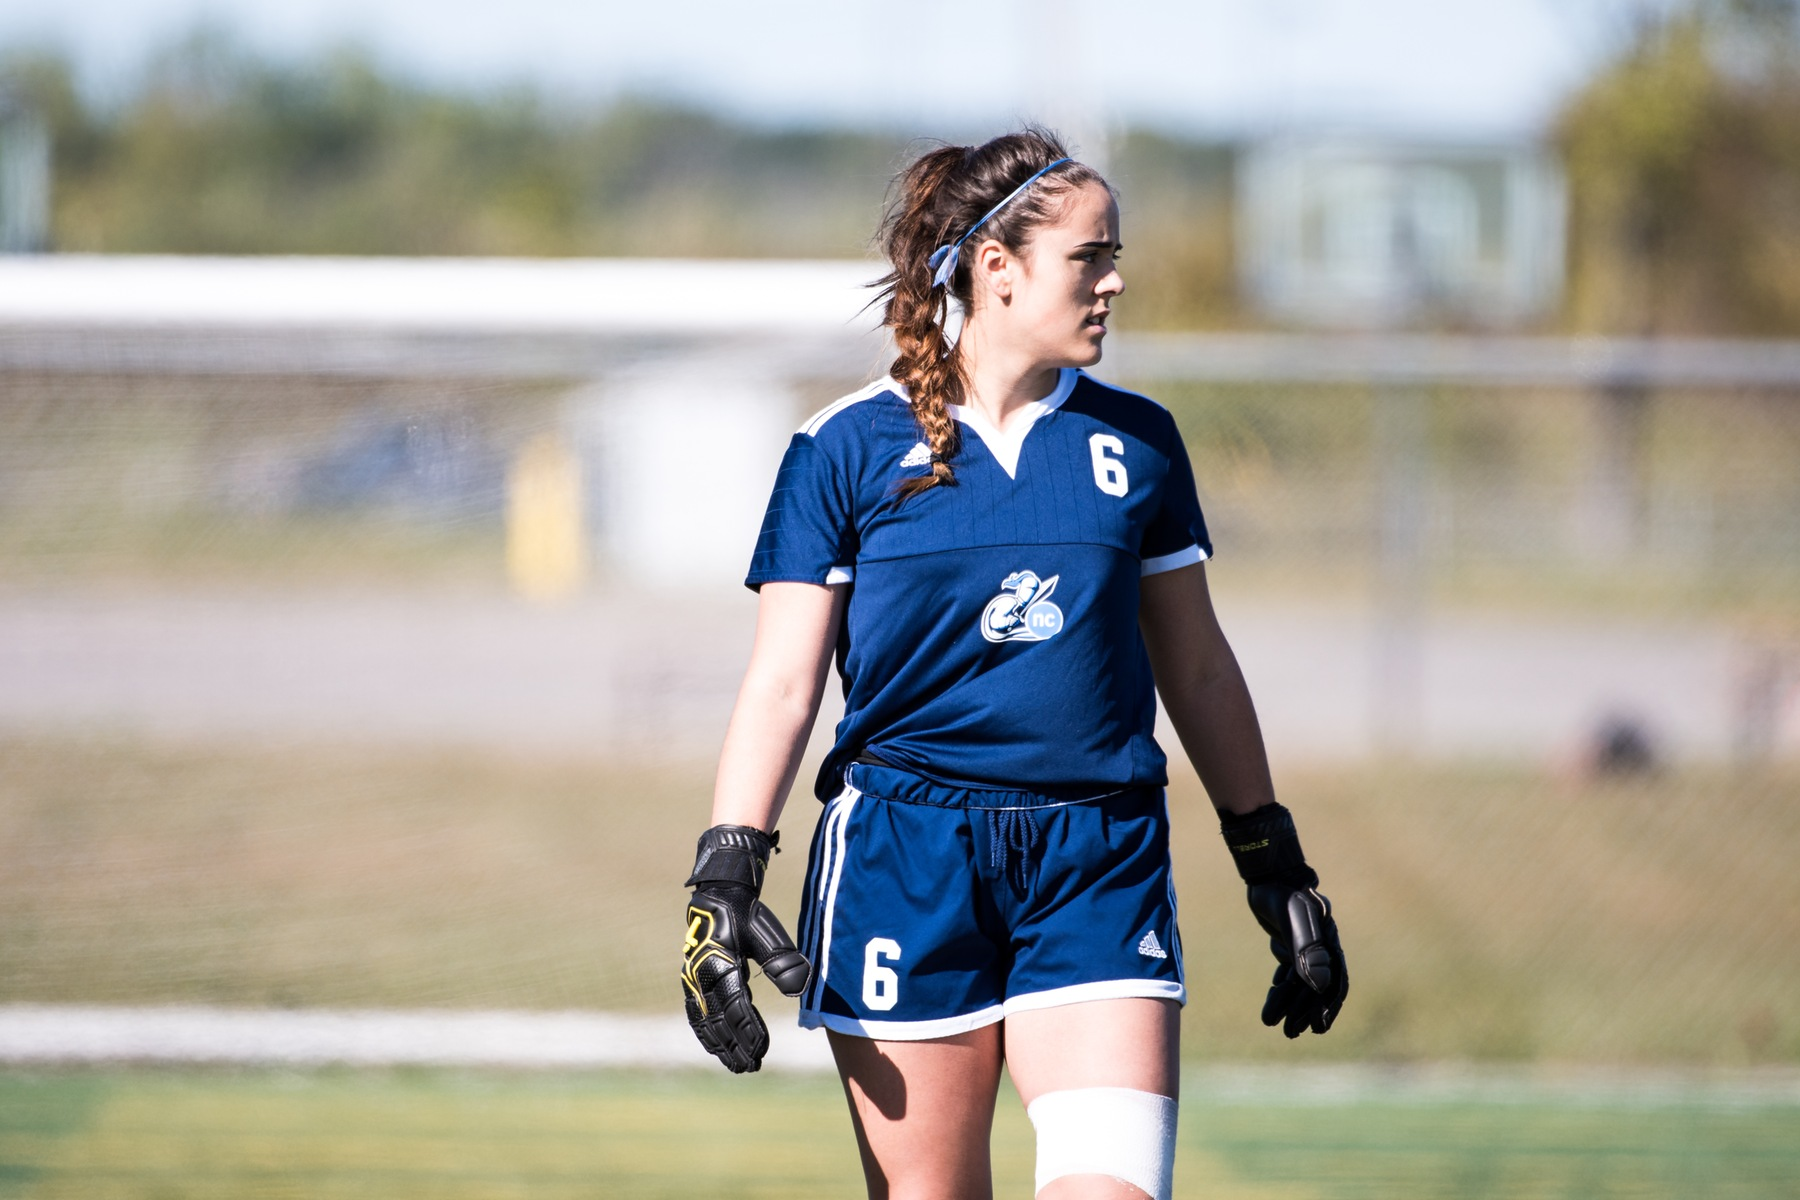 PREVIEW: Women's soccer look to stay hot against Mohawk